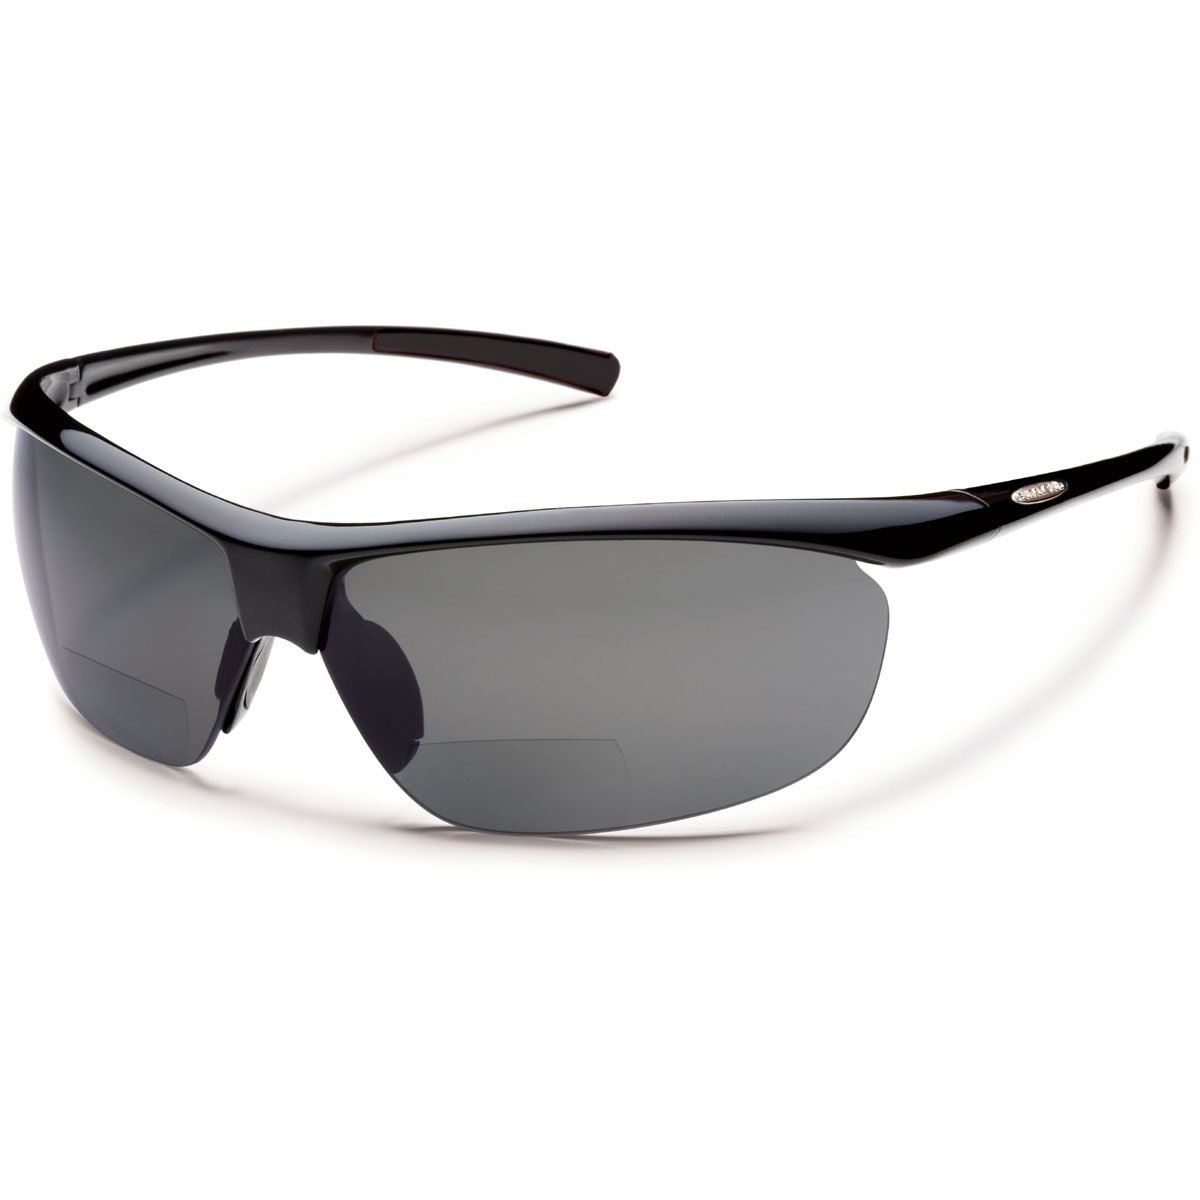 1.50 Polarized Reader Sunglasses Suncloud Zephyr